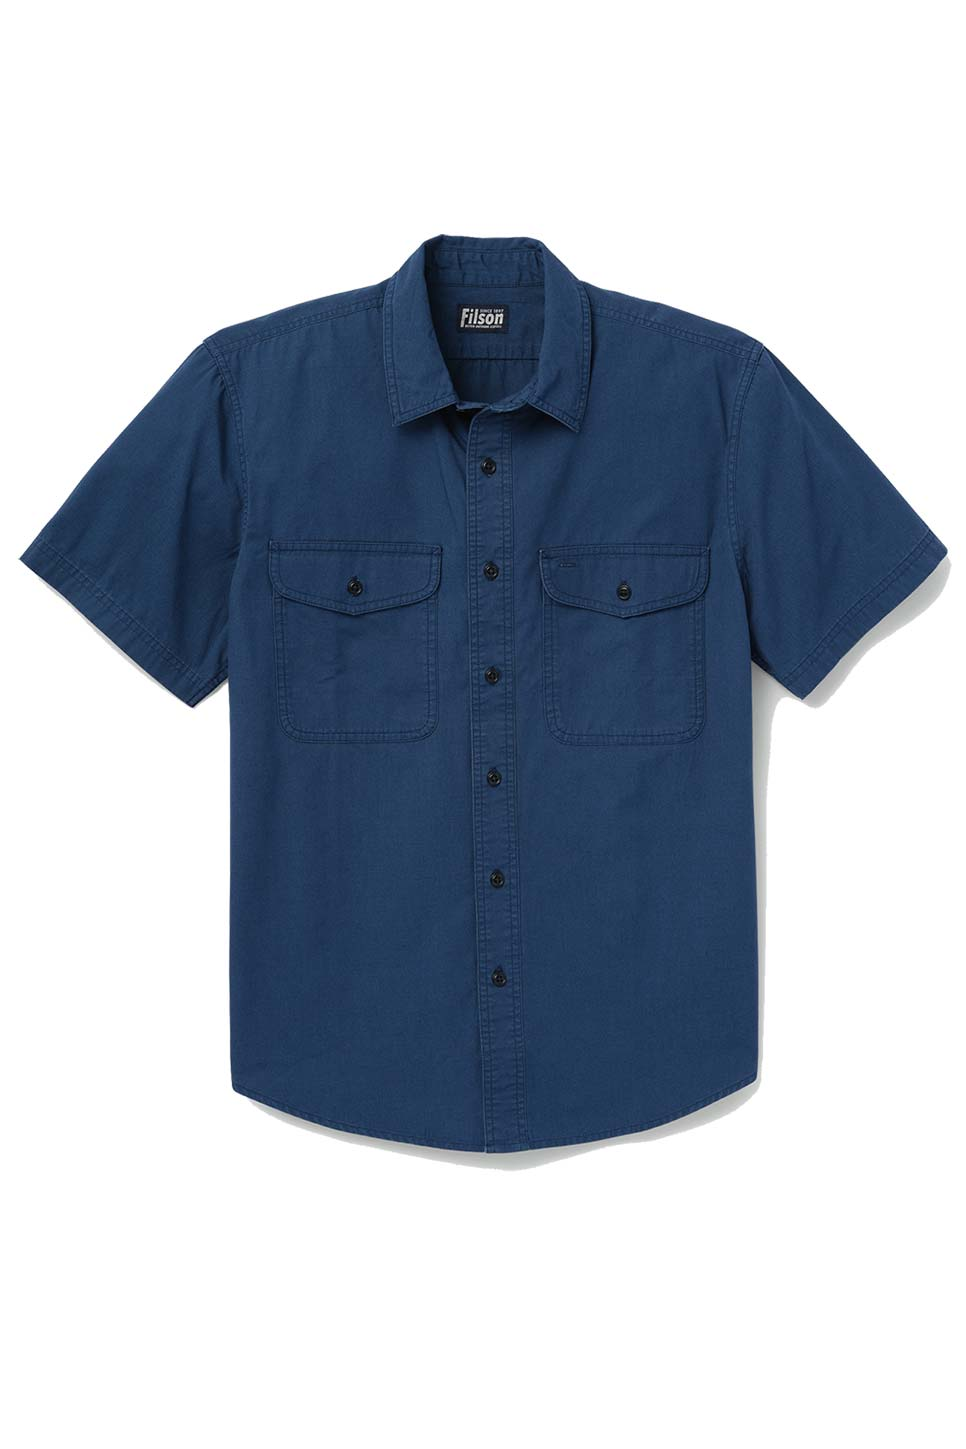 Filson - Short Sleeve Field Shirt - Blue Wing Teal